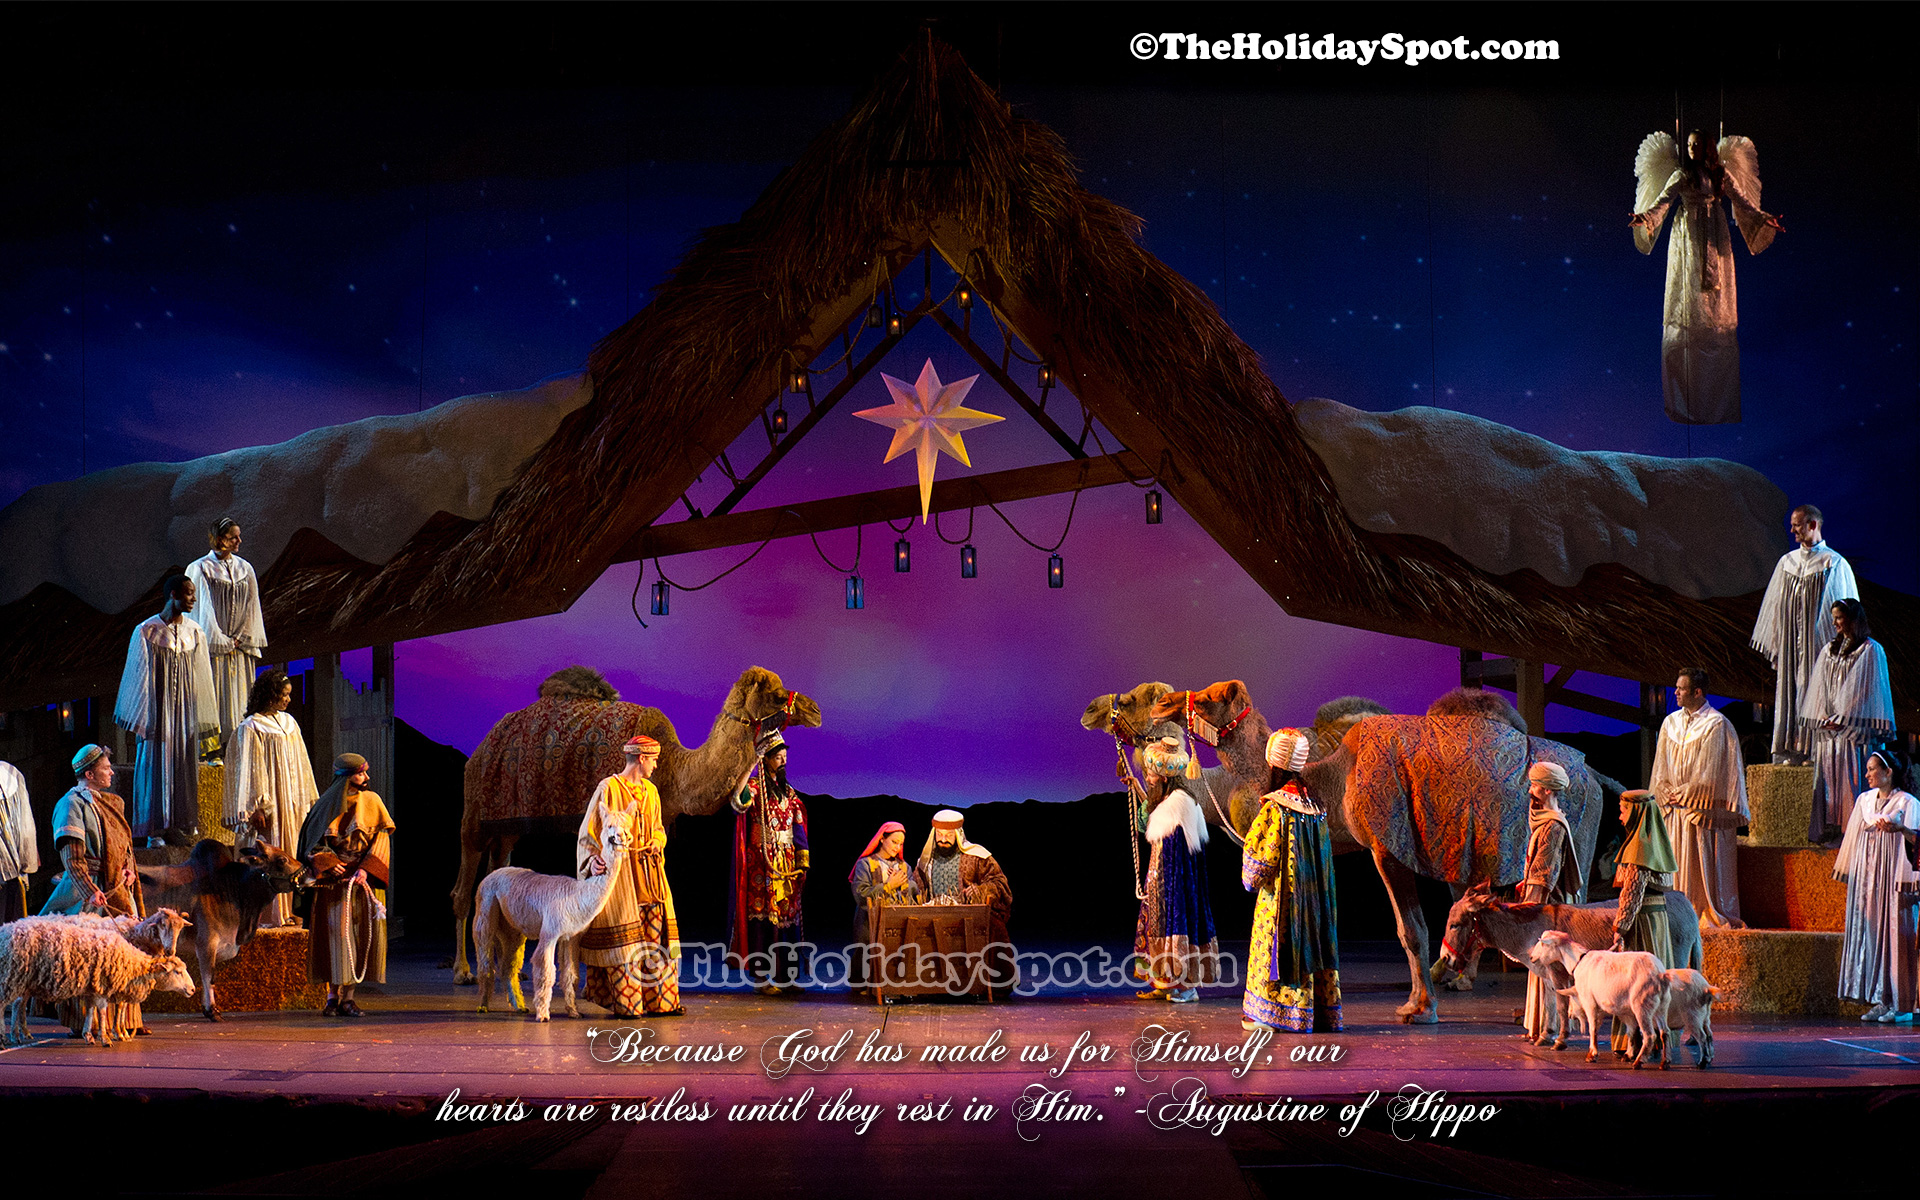 christian christmas wallpaper widescreen wallpapersafari